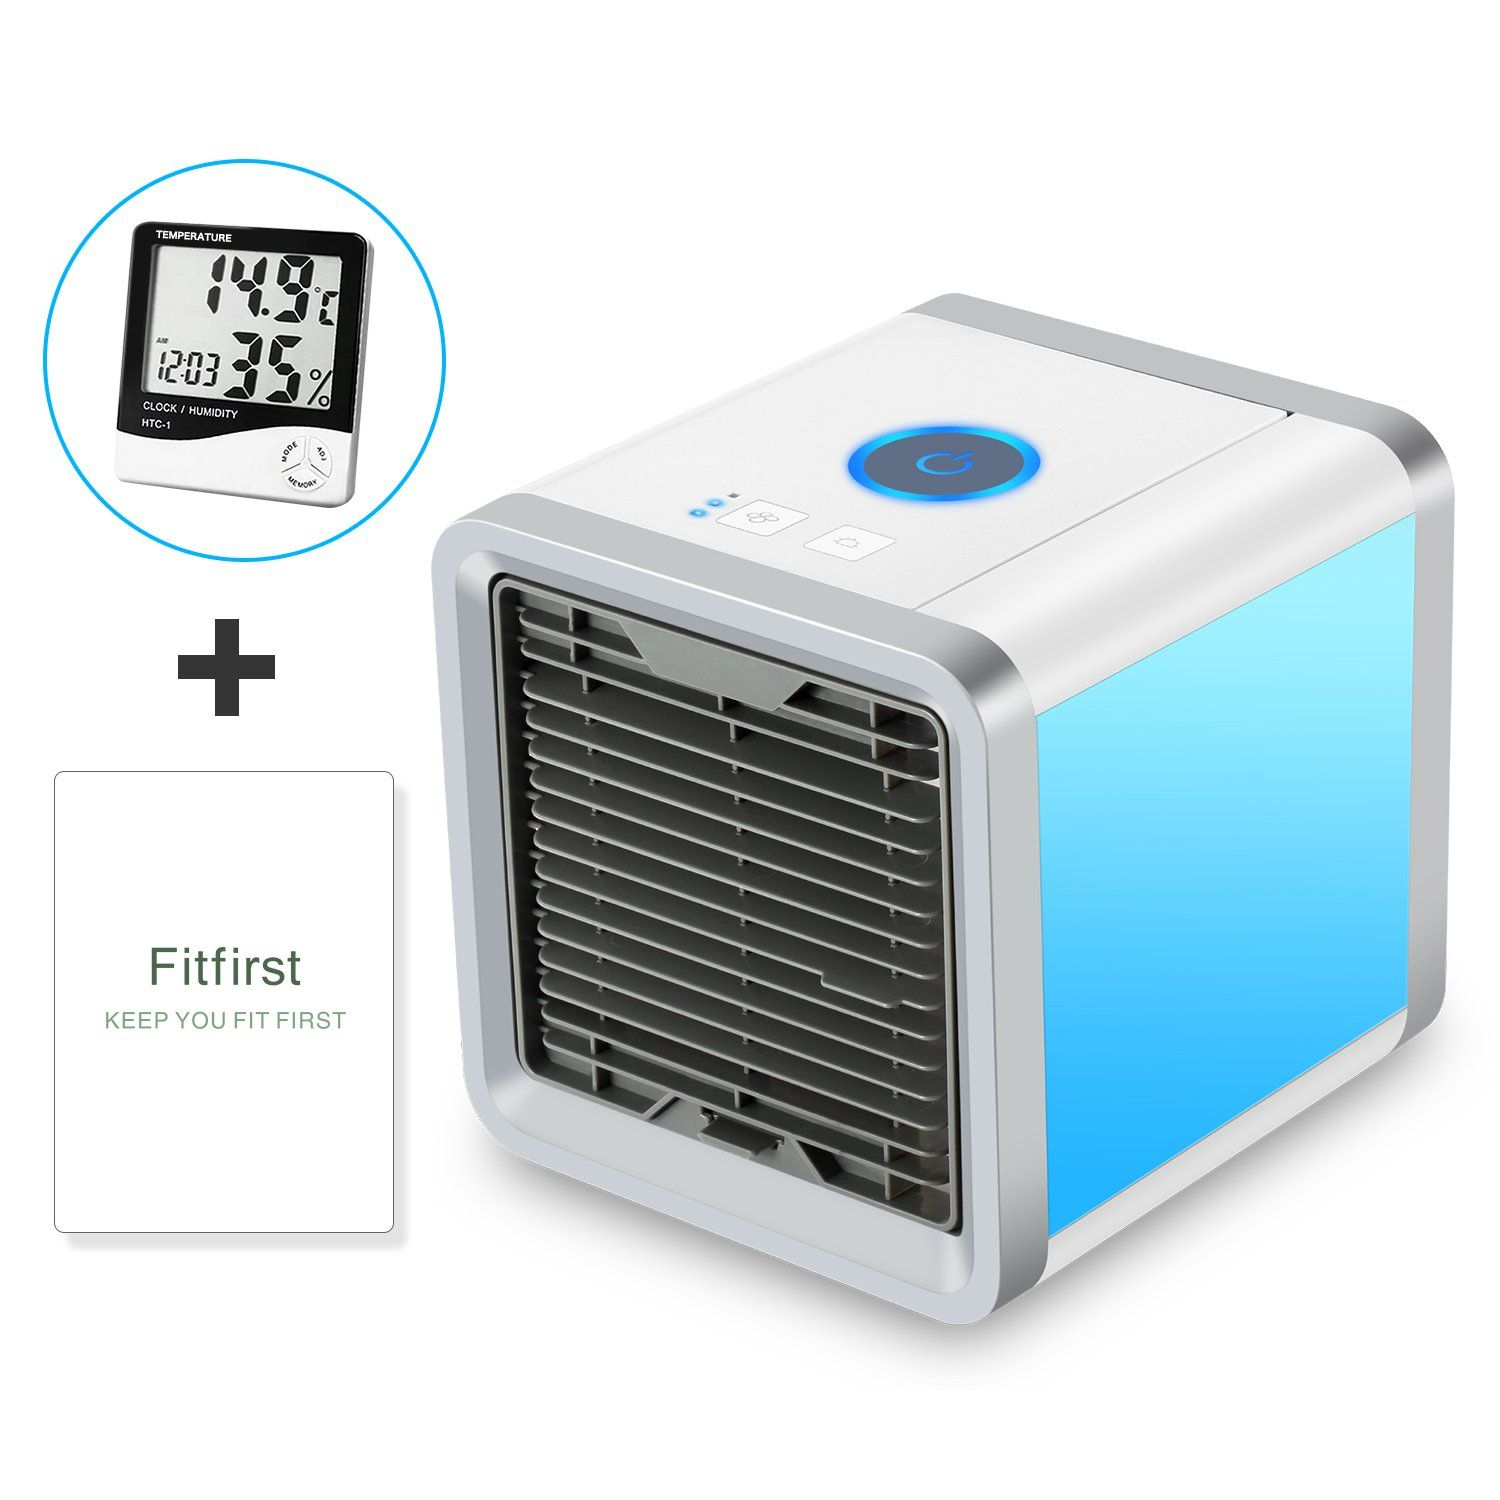 Fitfirst Personal Space Air Cooler 3 in 1 USB Mini